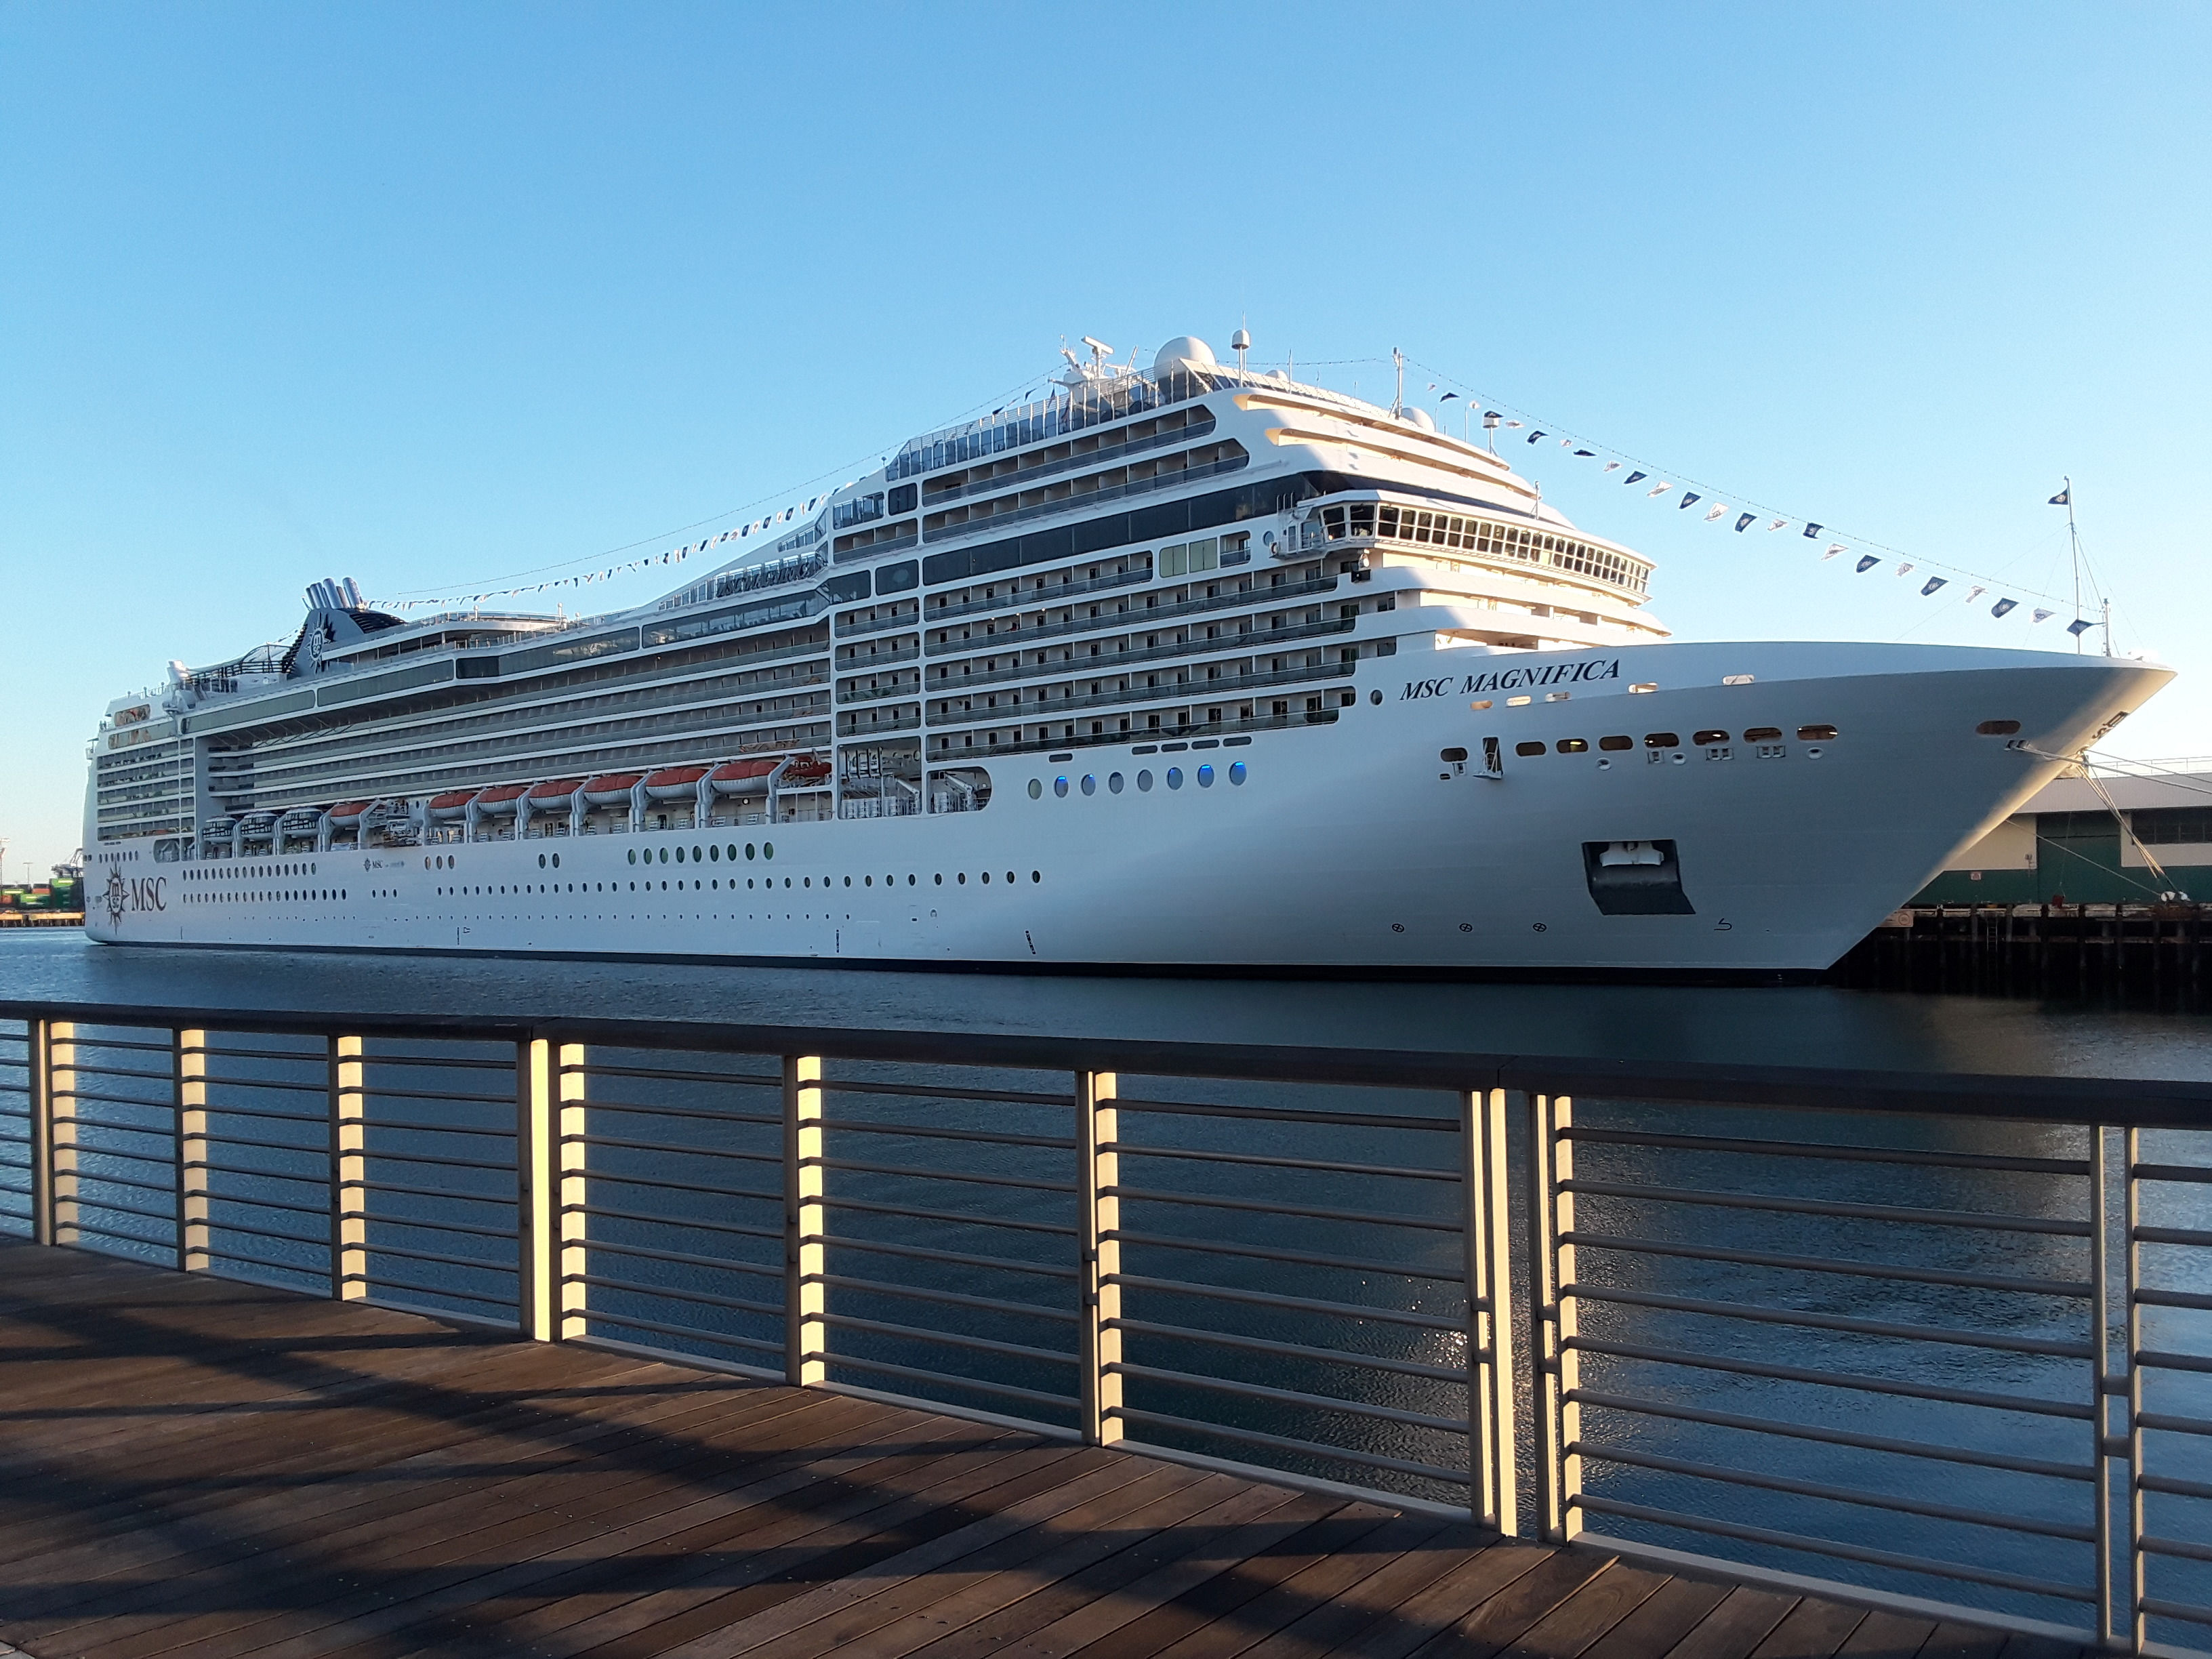 MSC Manifica at Berth 93